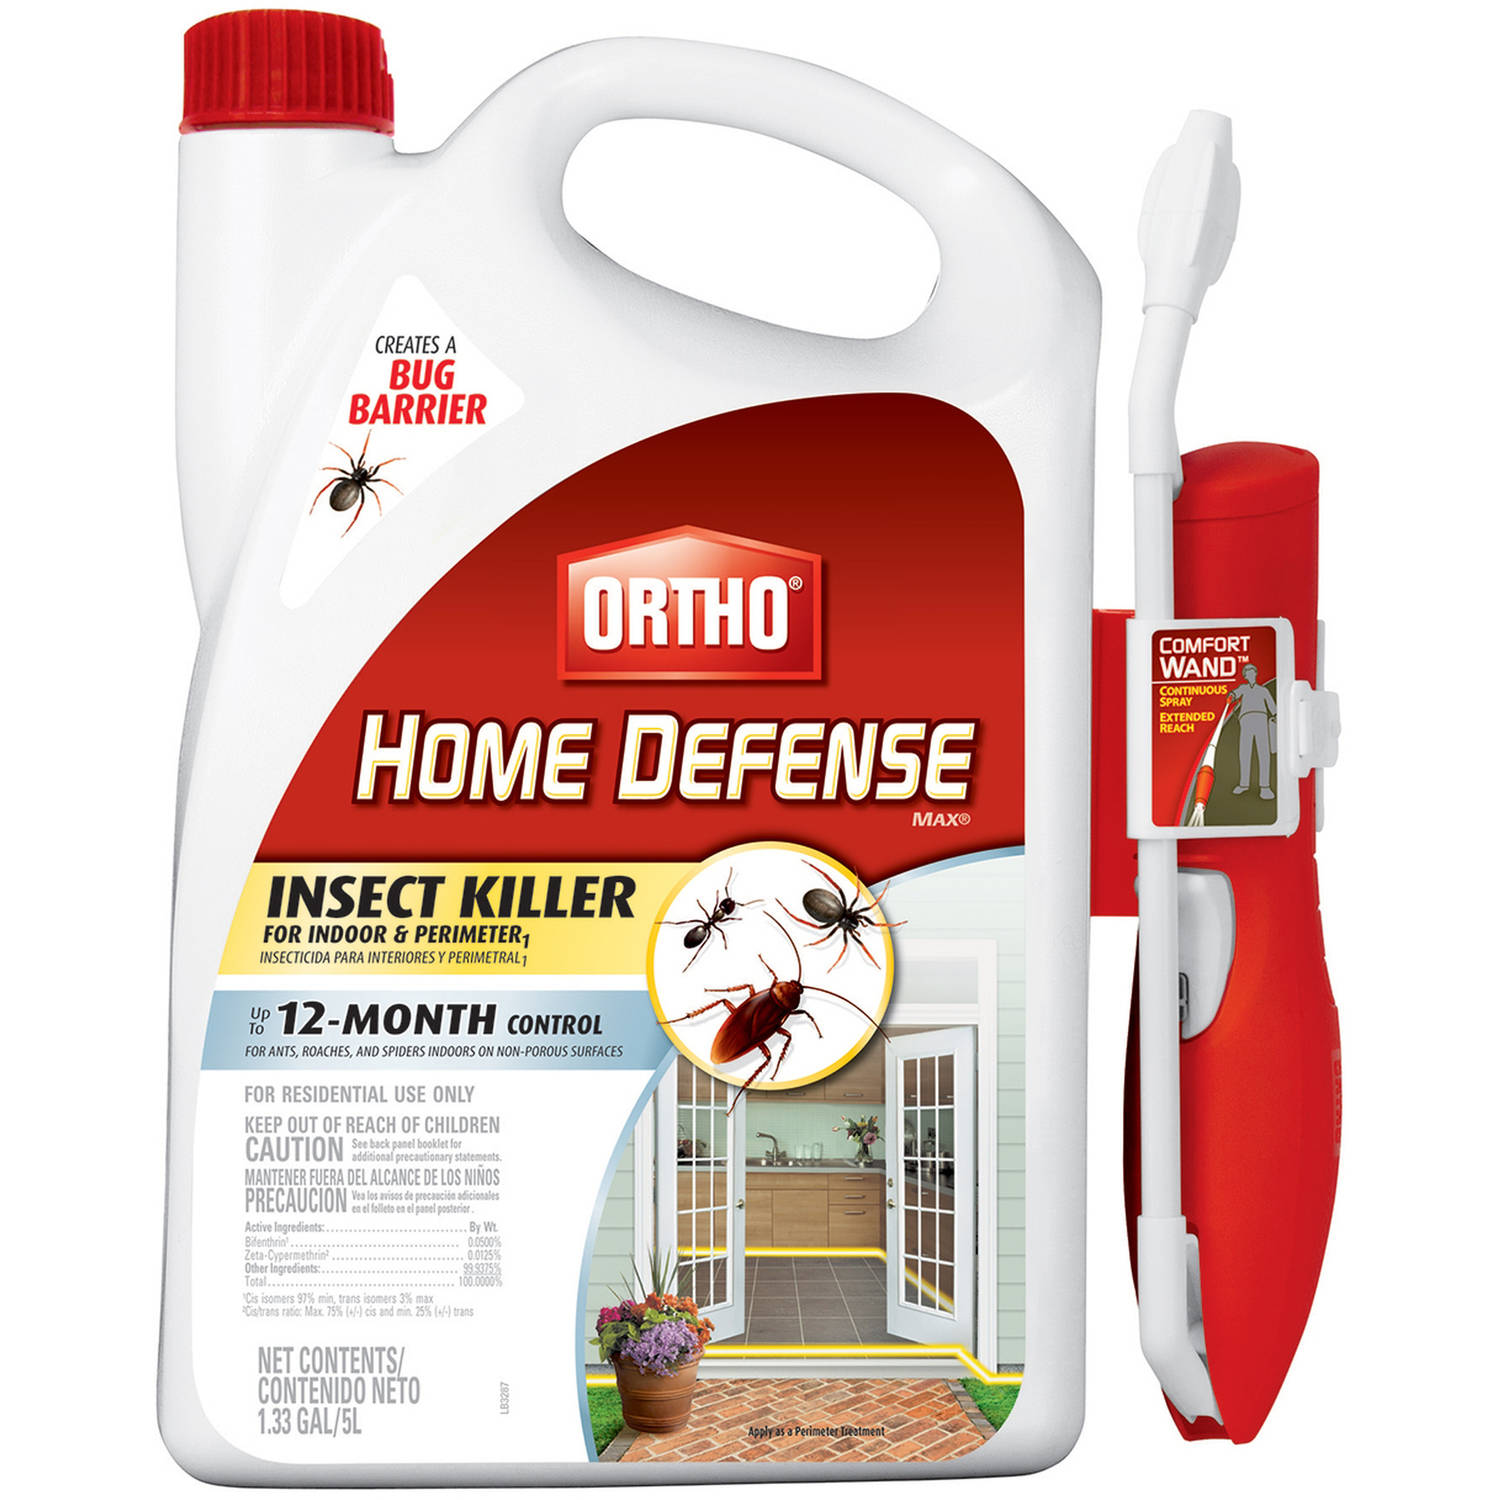 Ortho Home Defense Max Ready-to-Use with Wand, 1.33 gal